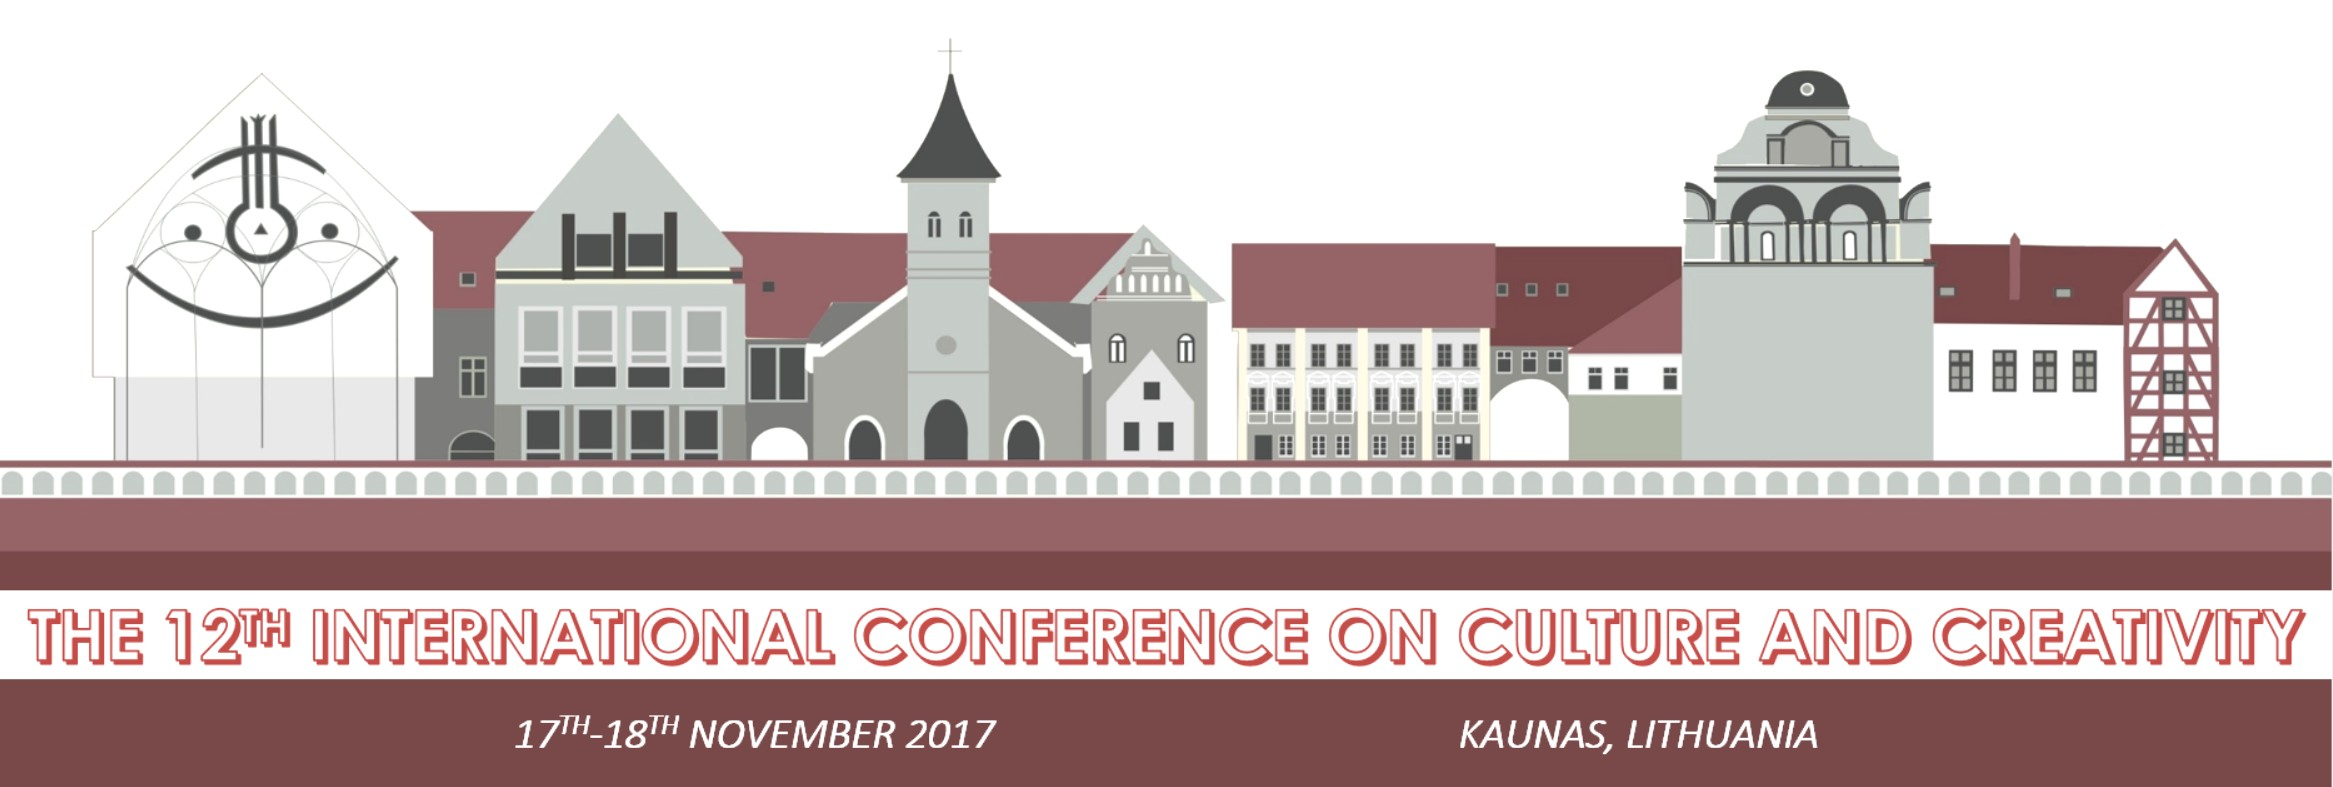 International Conference on Culture and Creativity 2017